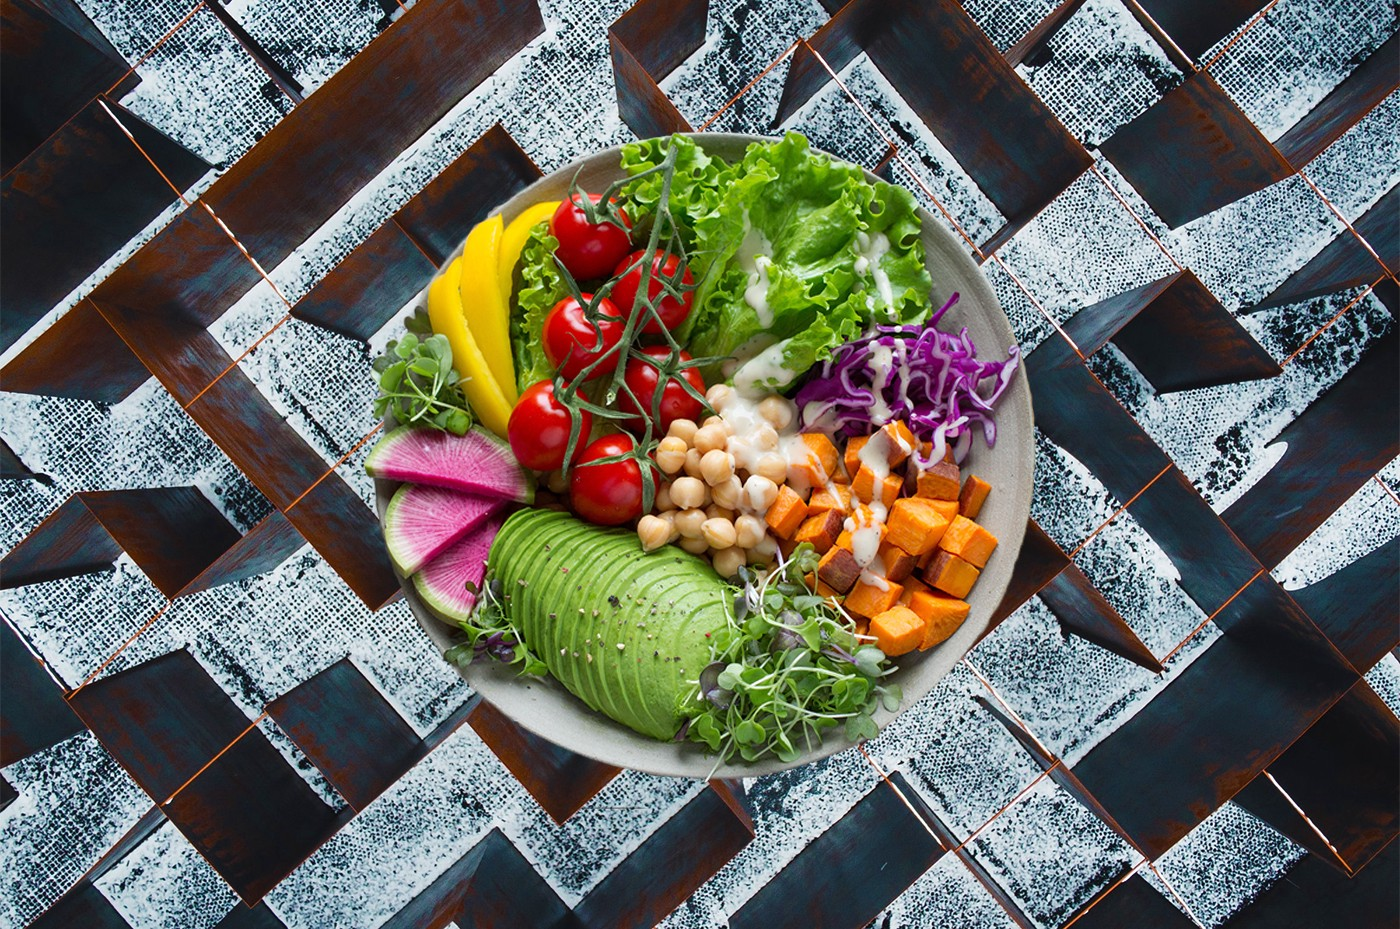 A colorful plate of food superimposed over a labyrinth